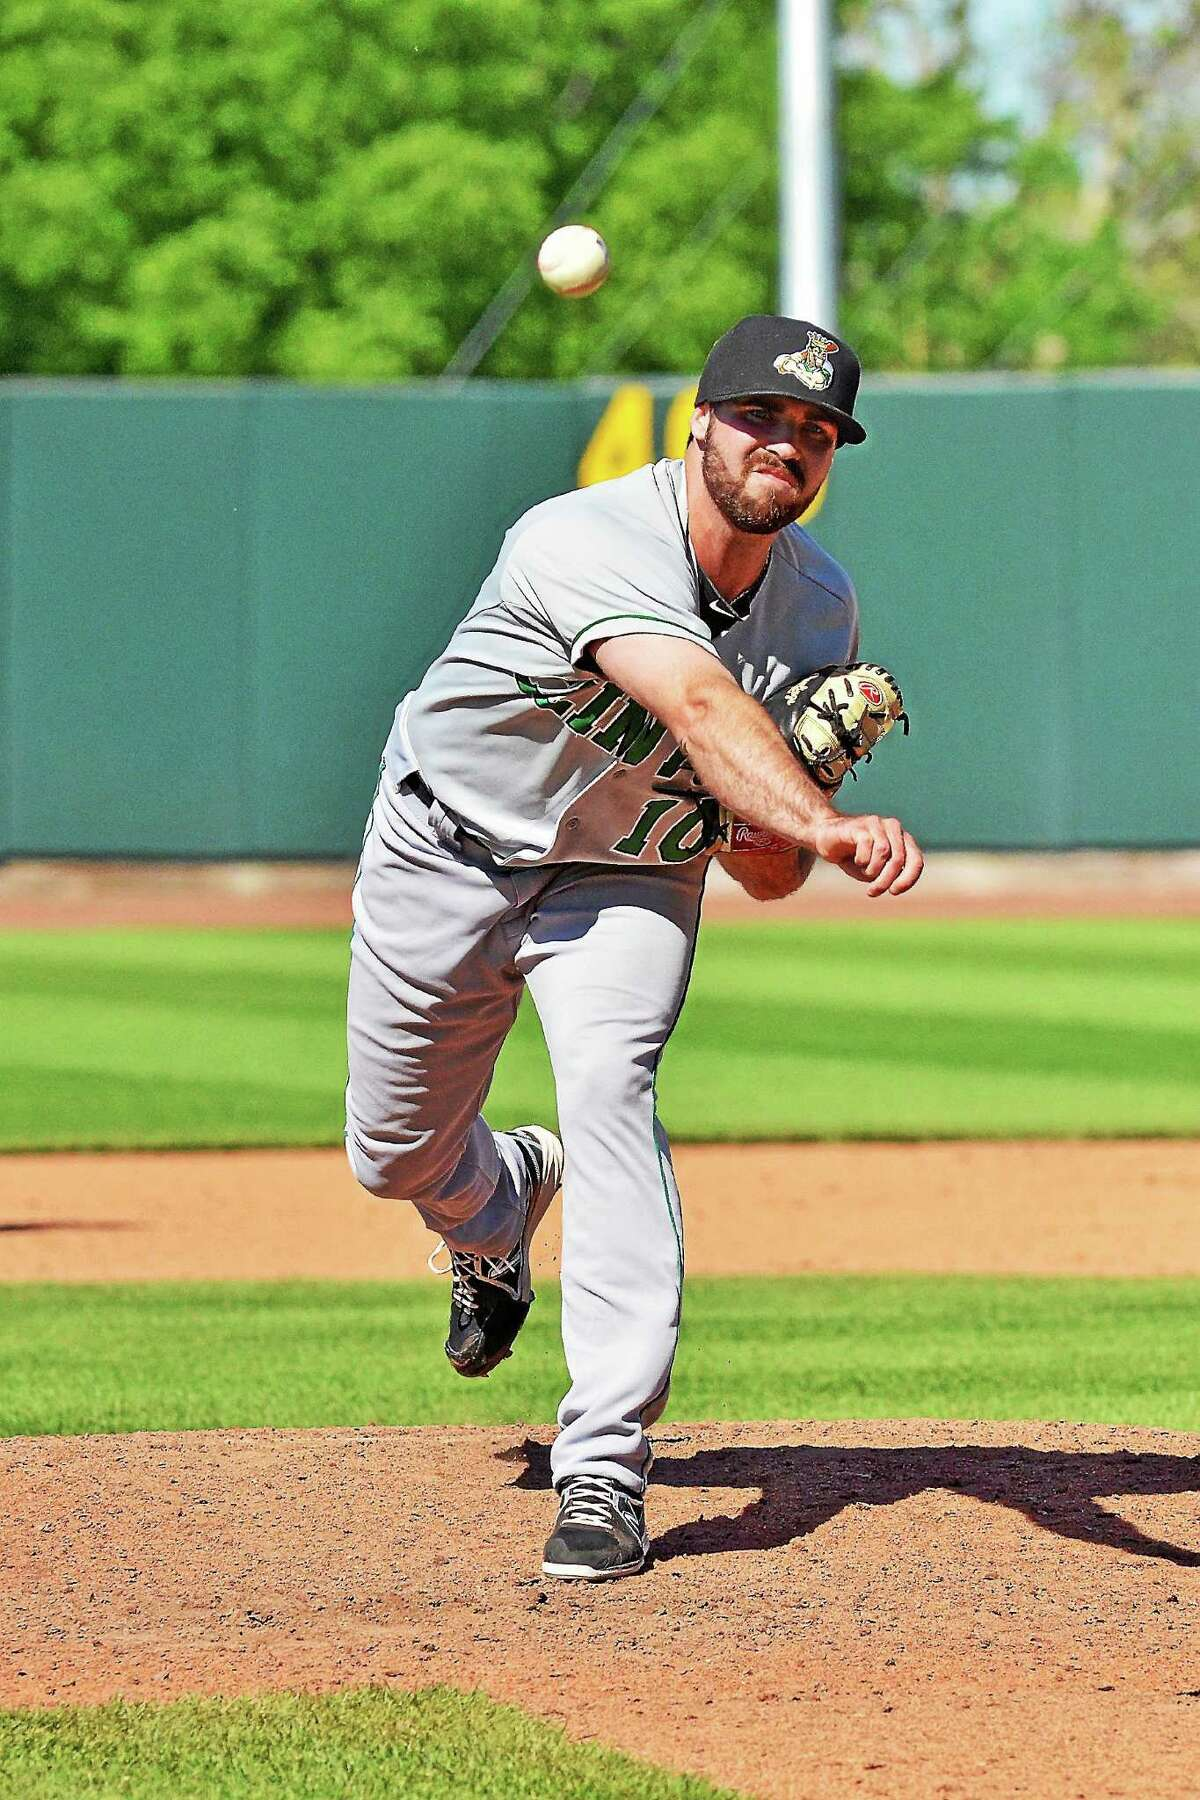 Waterbury's Kody Kerski is settling into his role as closer for the Clinton Lumberkings, Class A affiliate of the Seattle Mariners.